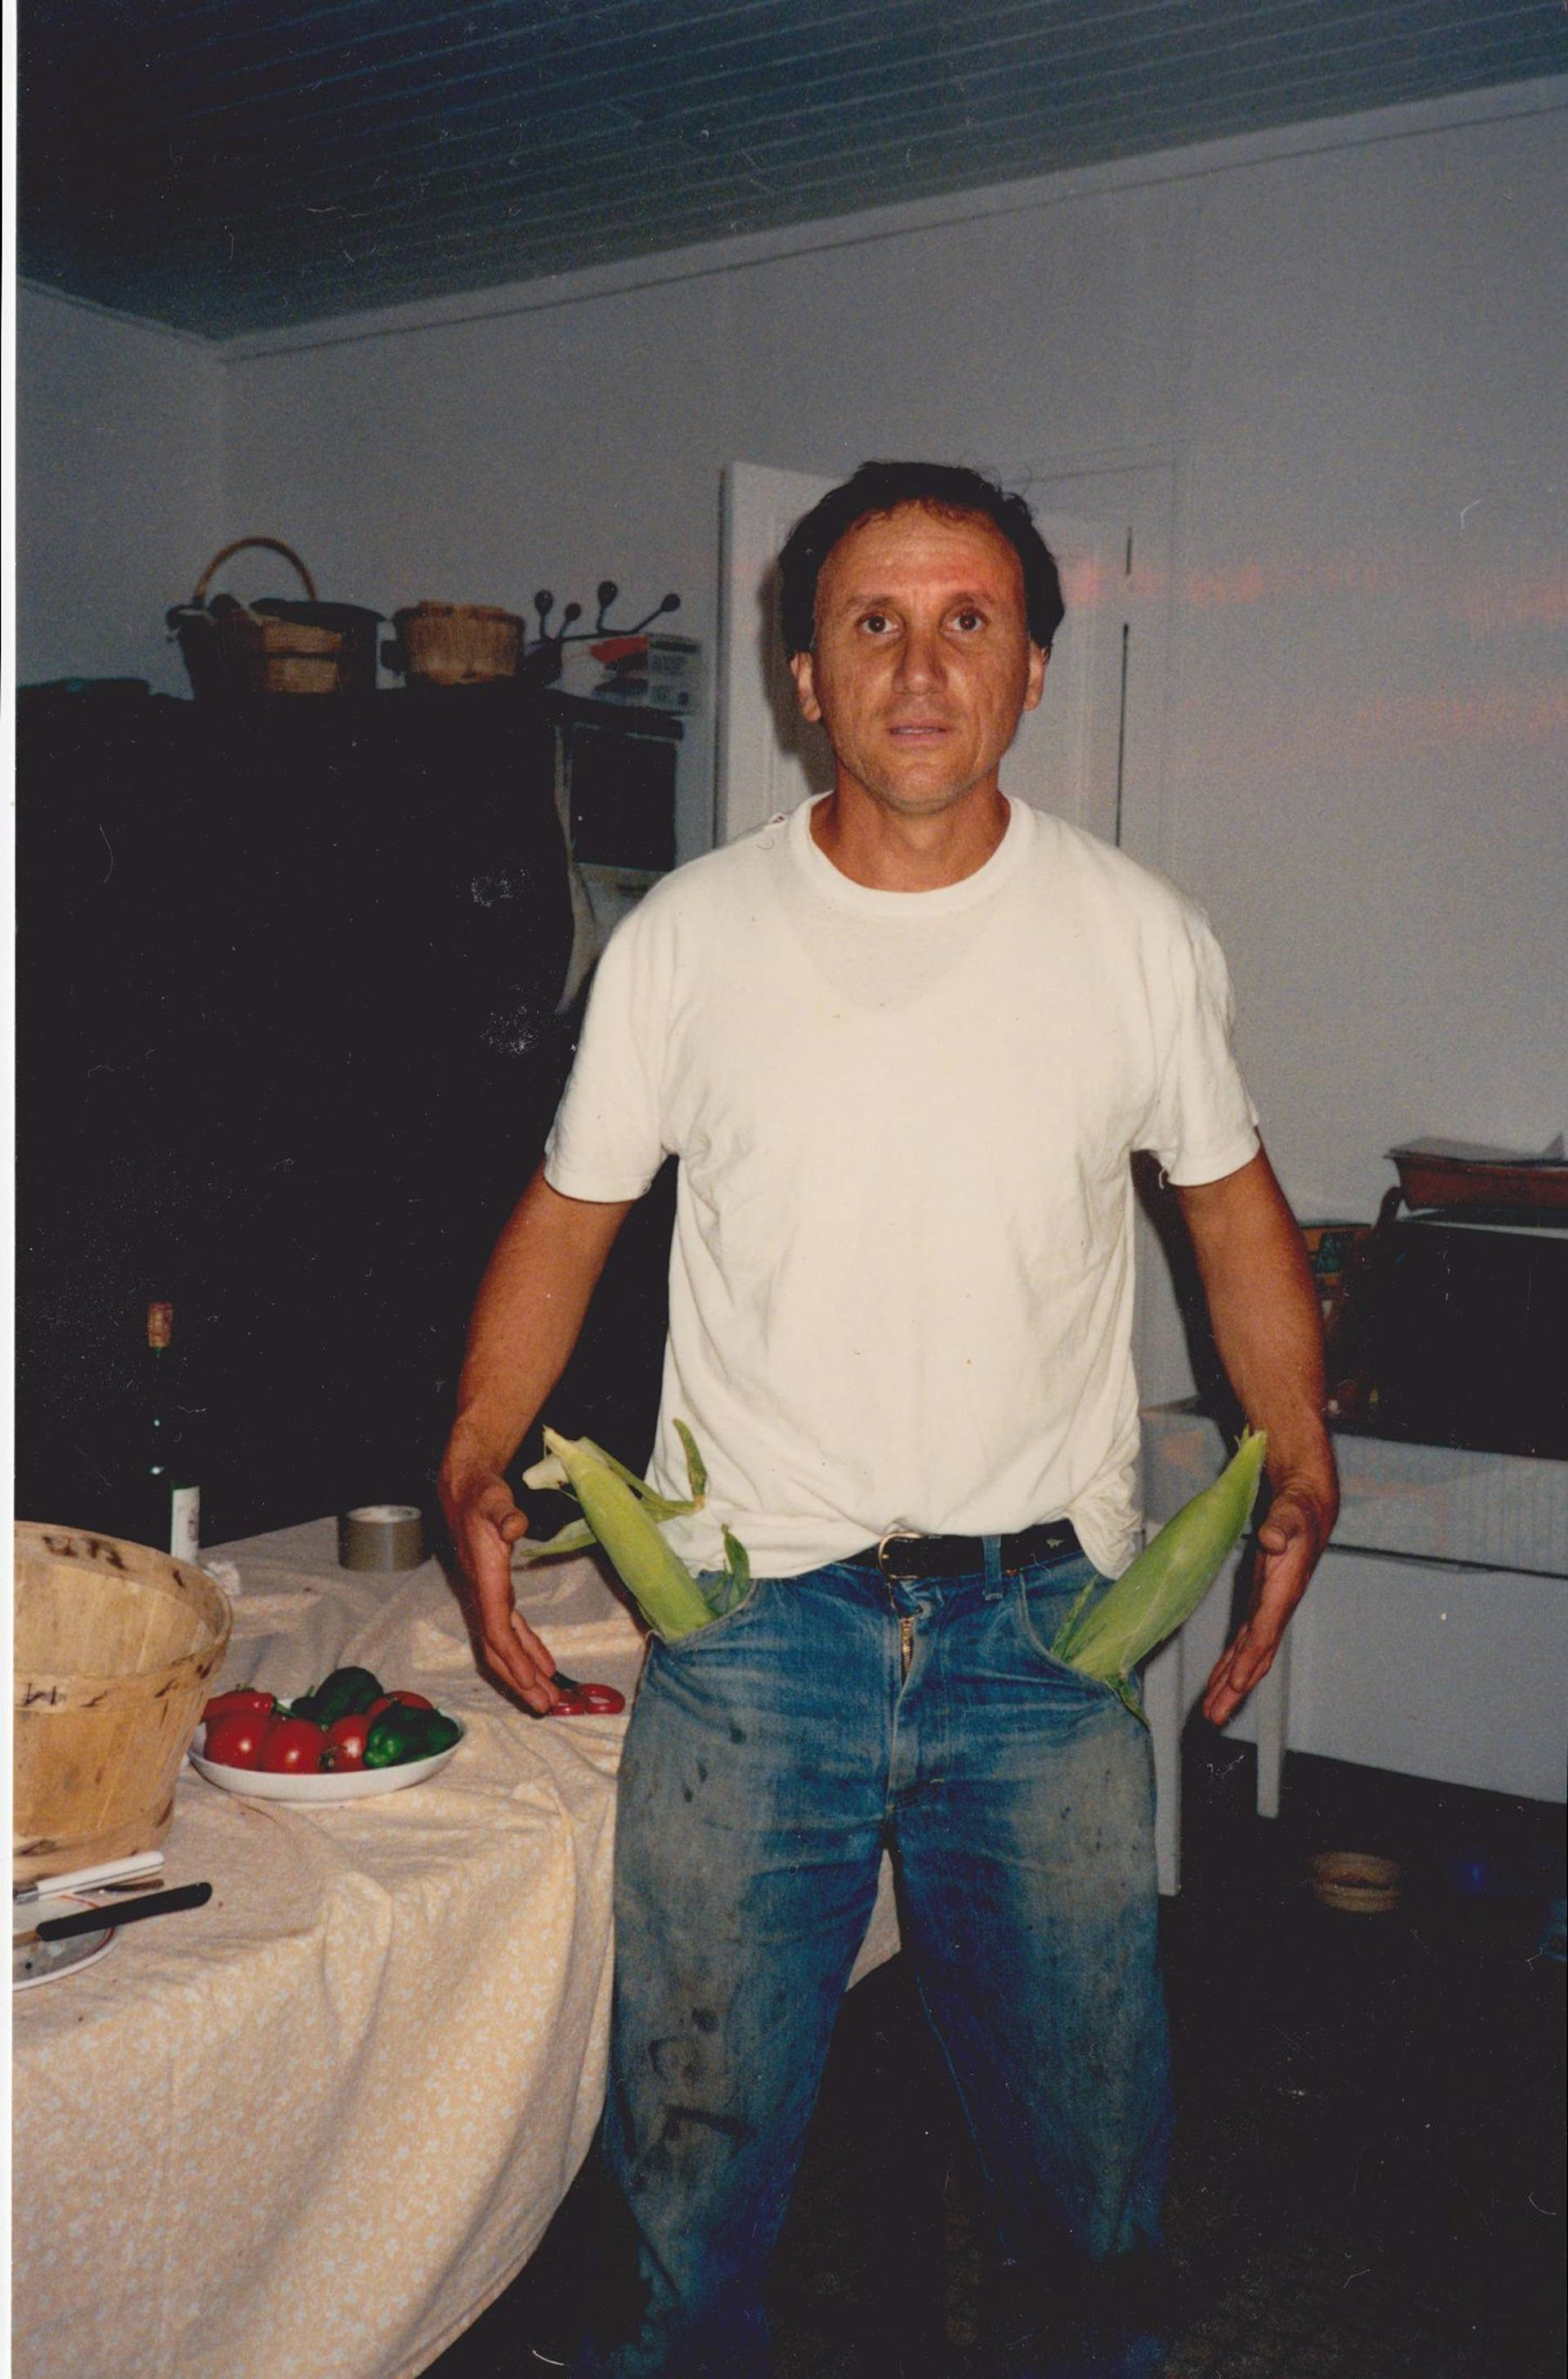 A photo of Antopolsky, with Corn Guns in his pockets, taken in France in the 1990s.